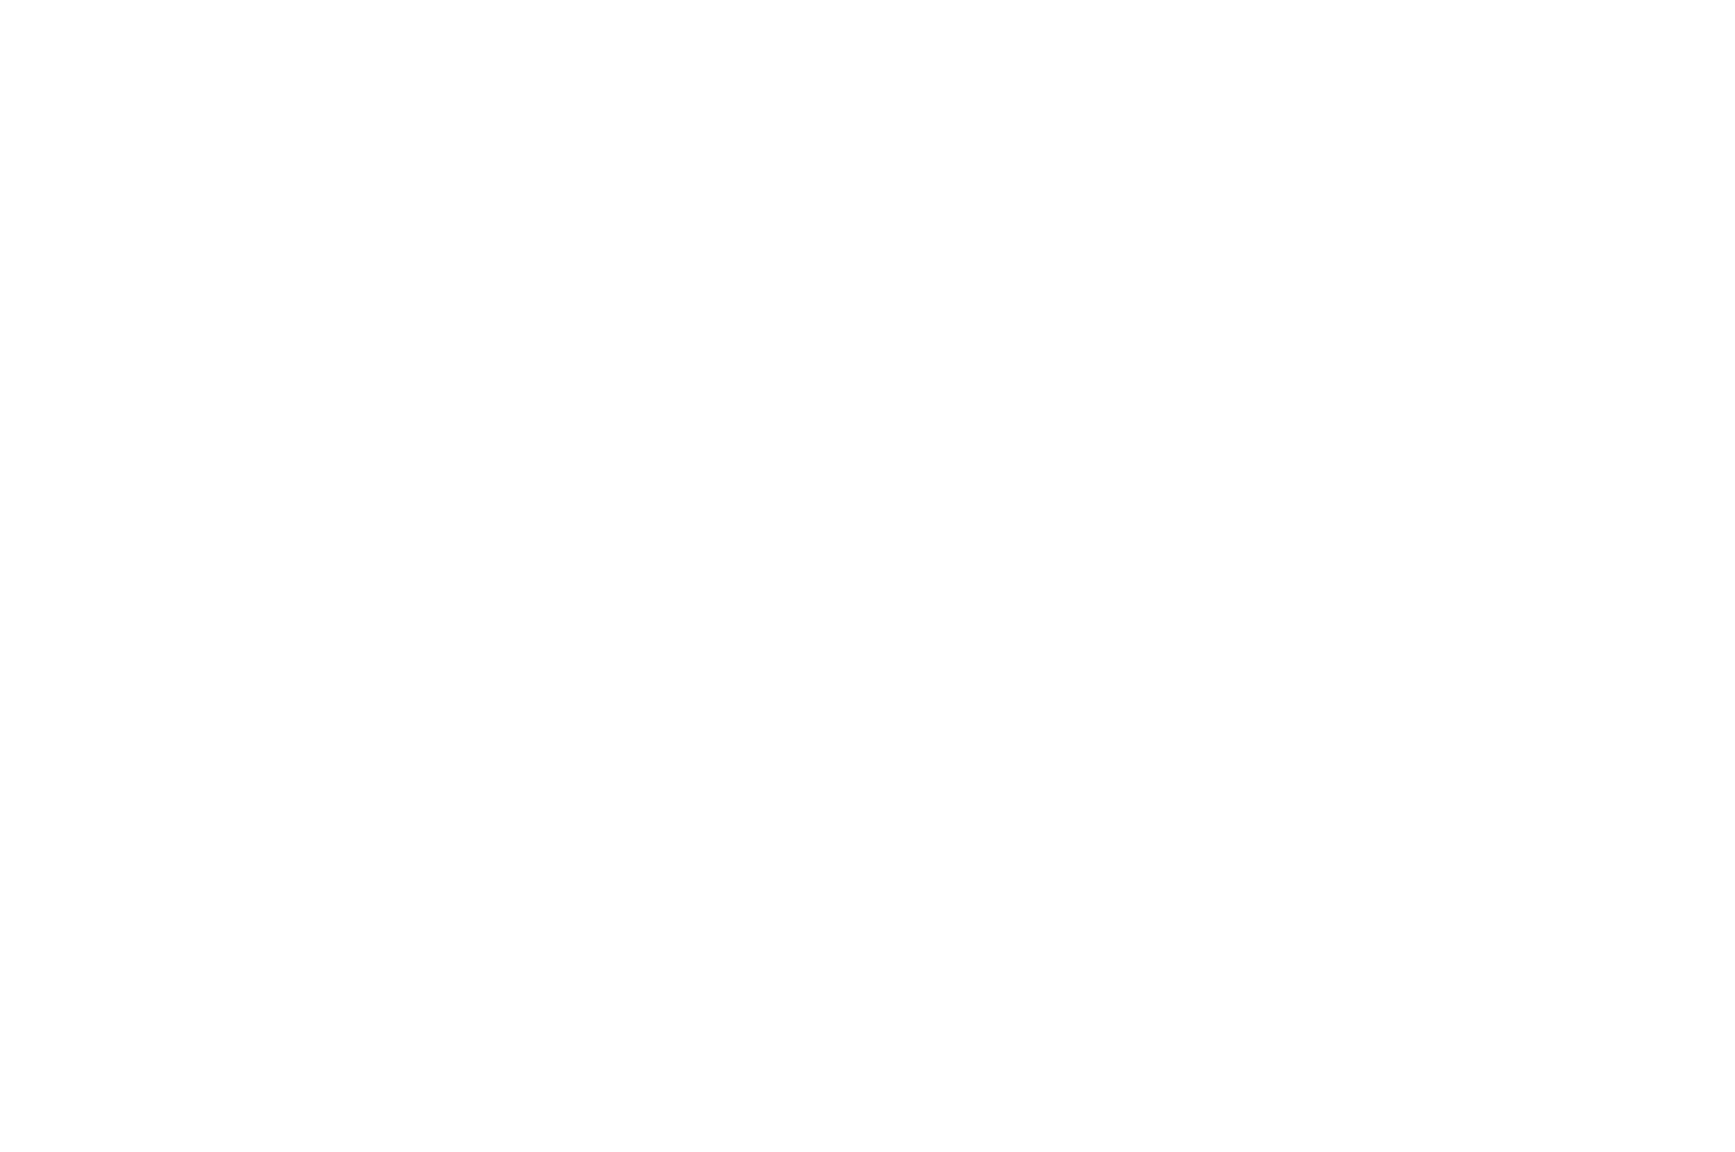 OFFICIAL SELECTION - BEST POSTER - Action on Film MegaFest 16th17th Annual Film Festival and Writers Competition 20202021 - 2021